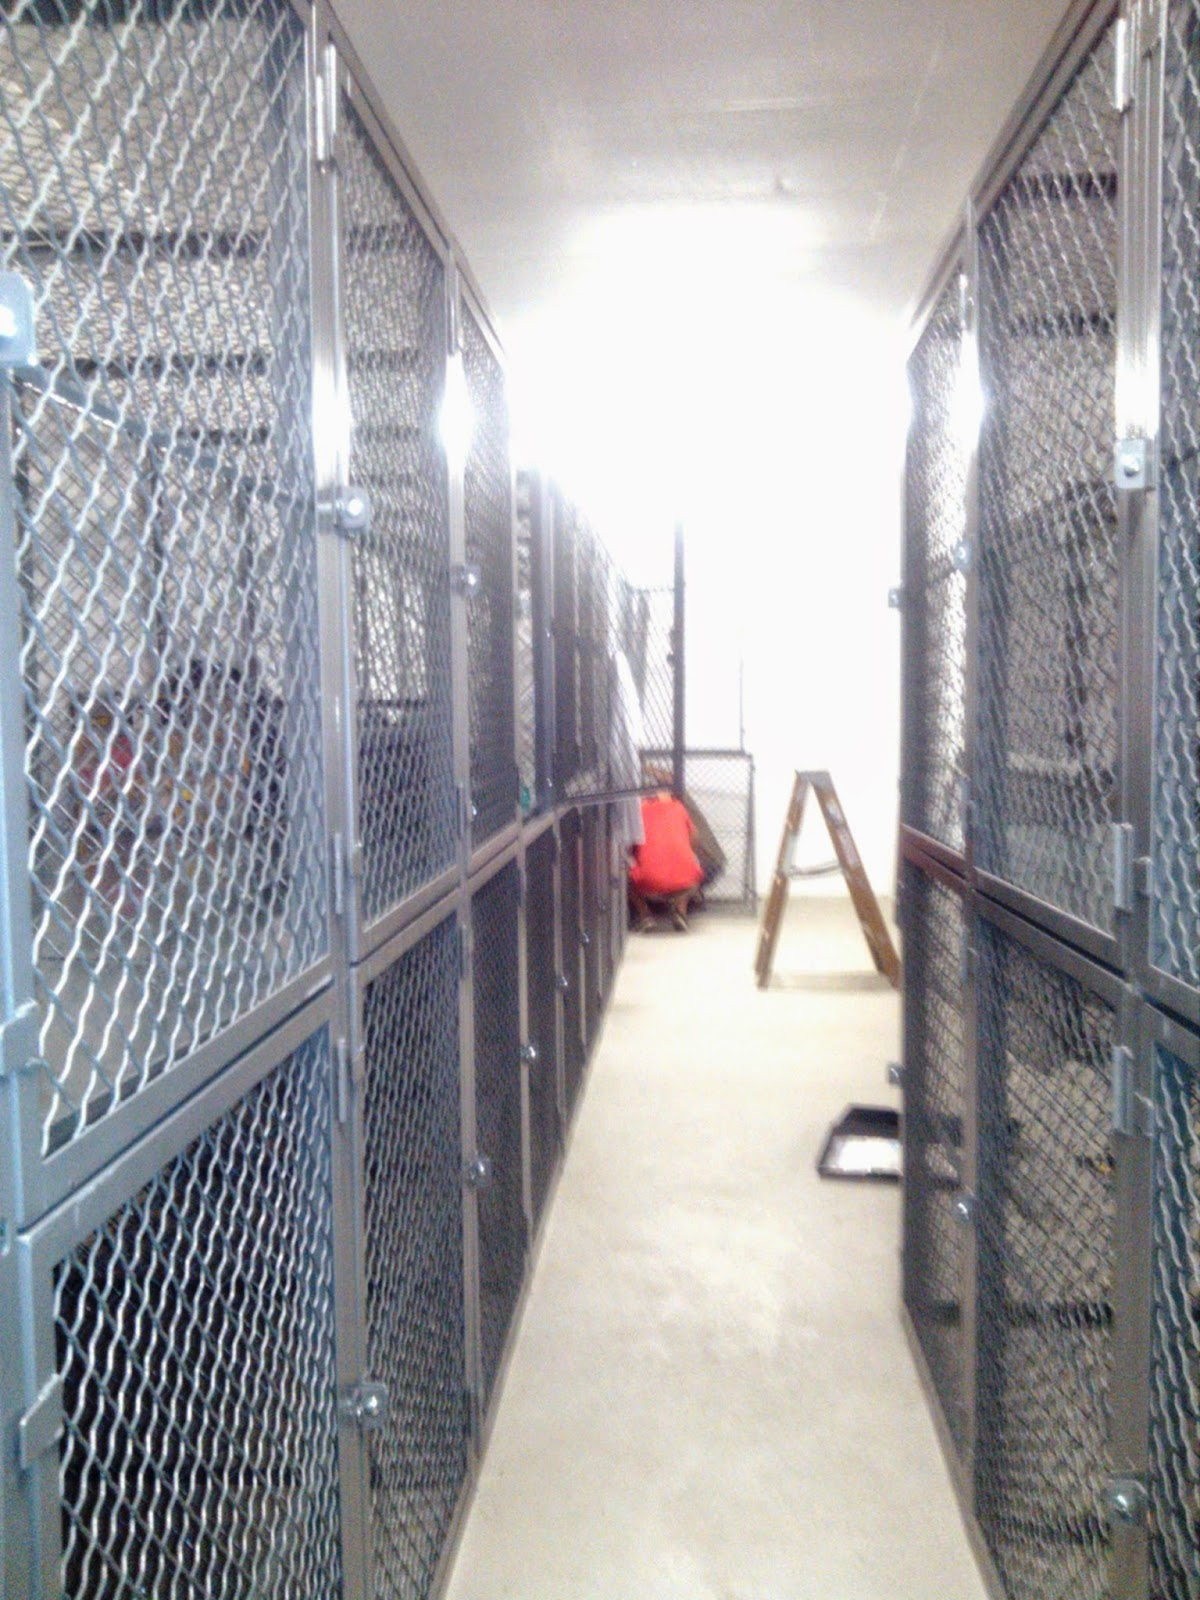 Tenant Storage Lockers West 12th St NYC| Tenant Storage Lockers in ...